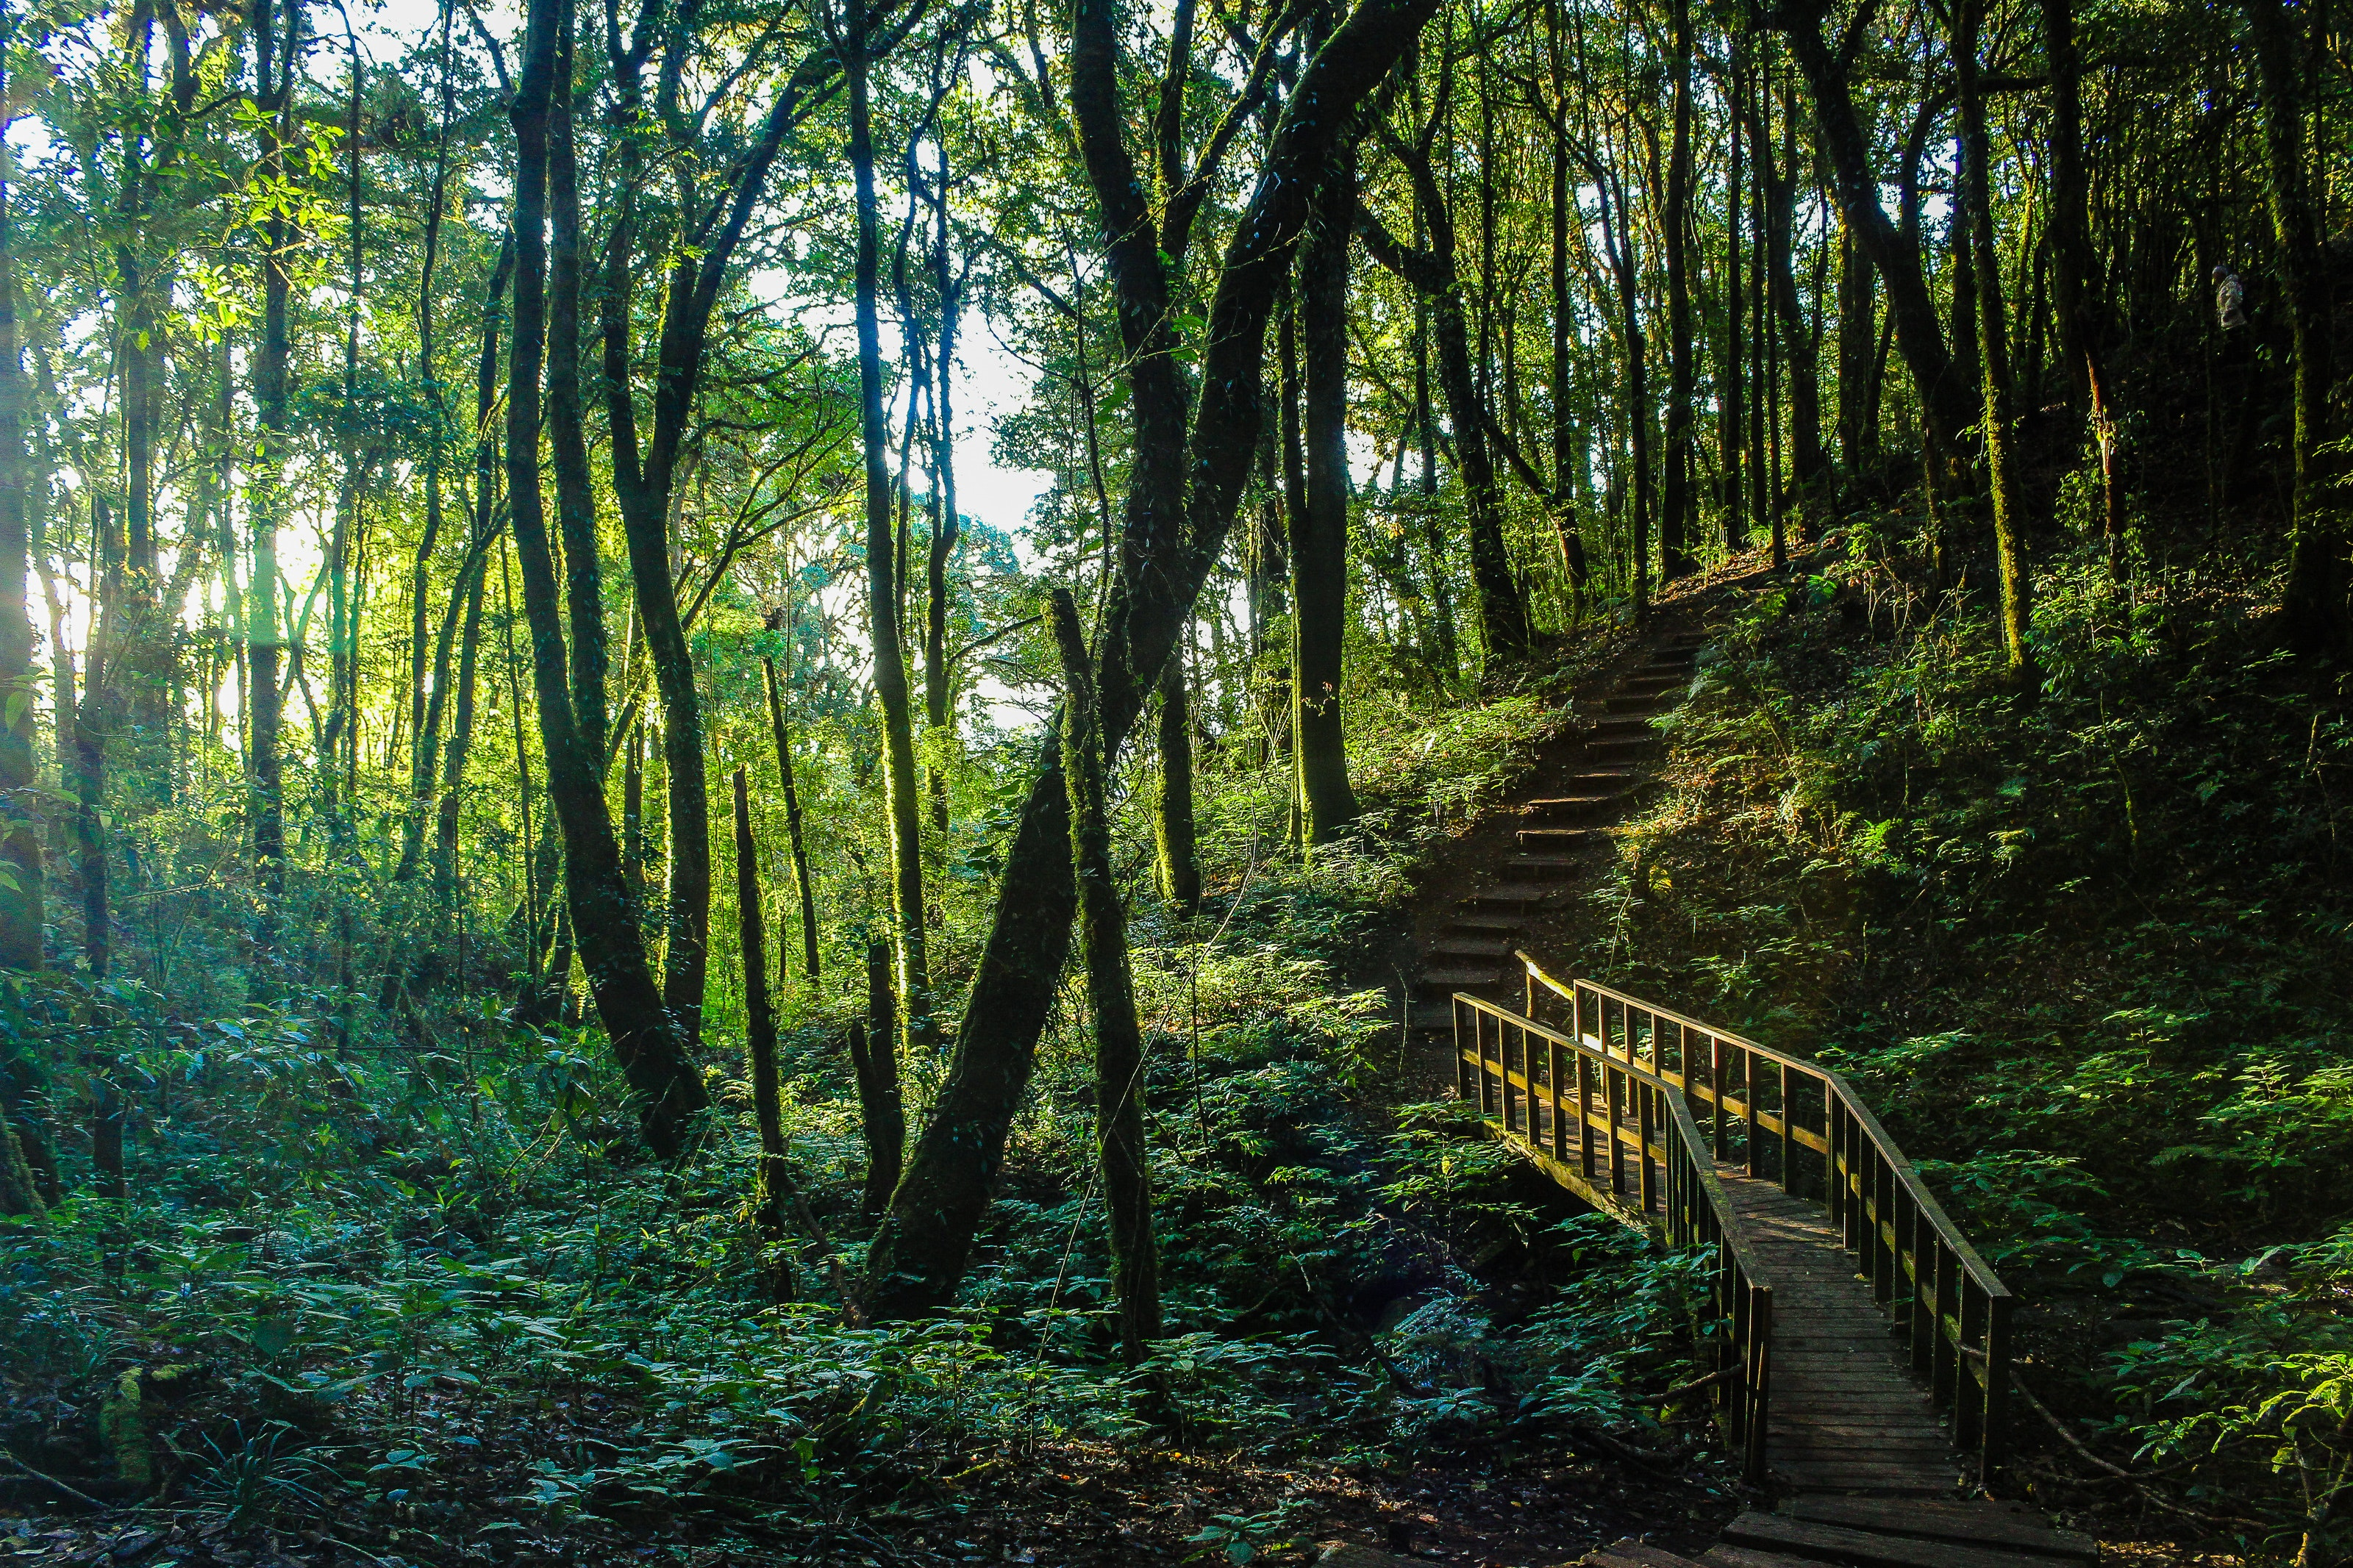 Brown Stair Between Trees, Scenic, Steps, Scenery, Rainforest, HQ Photo